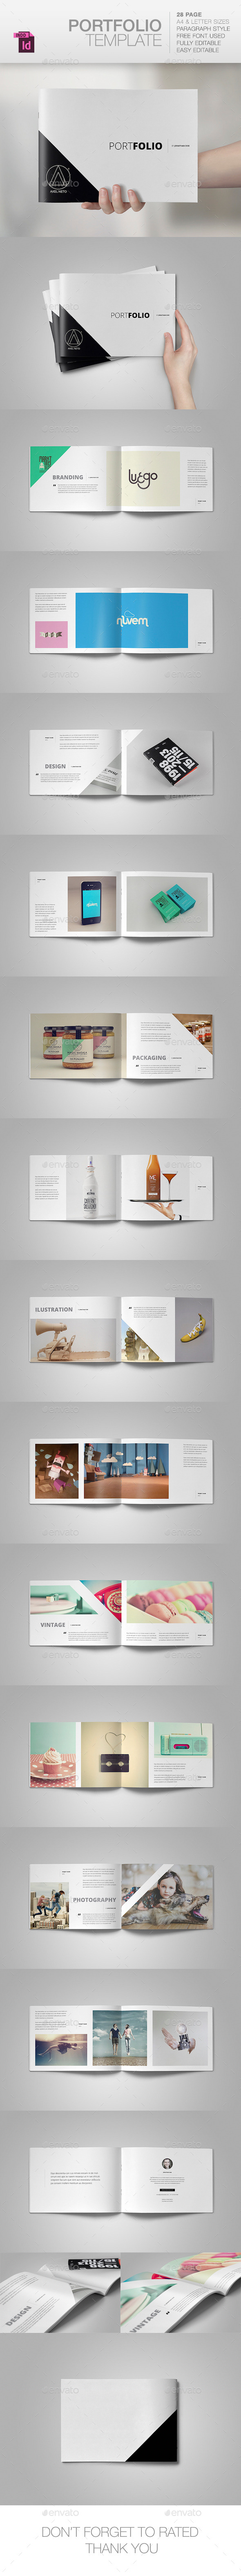 GraphicRiver Portfolio Template 10290456